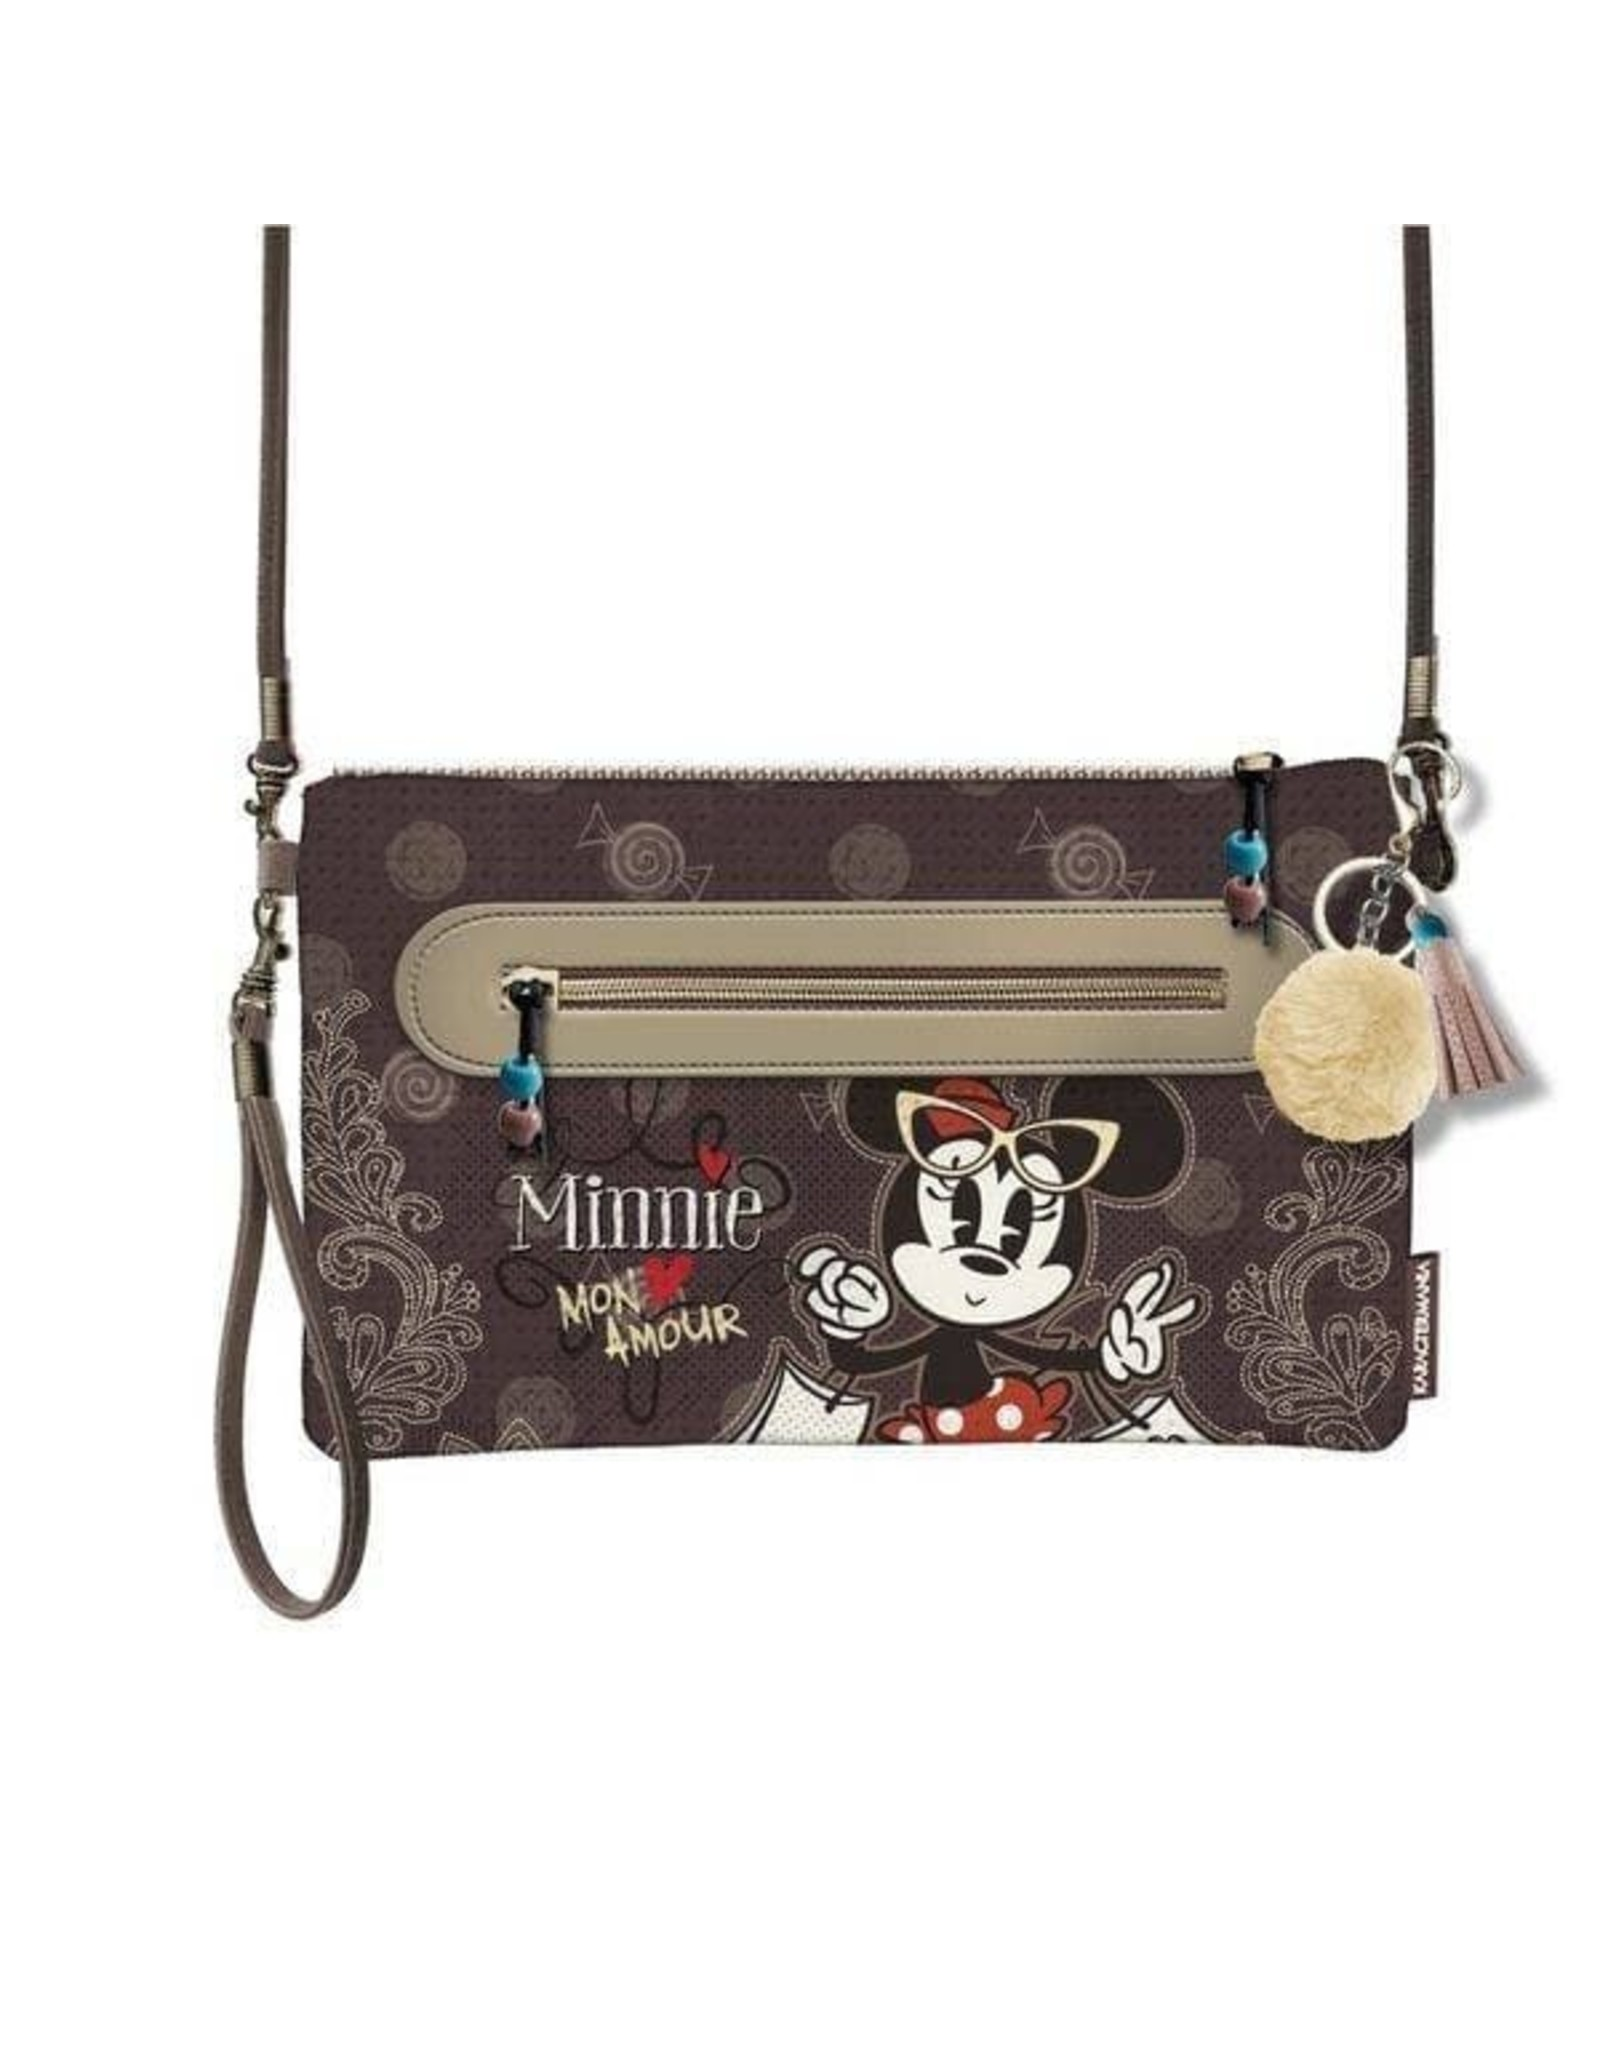 Disney Disney bags - Disney shoulder bag Minnie Mouse Mon Amour